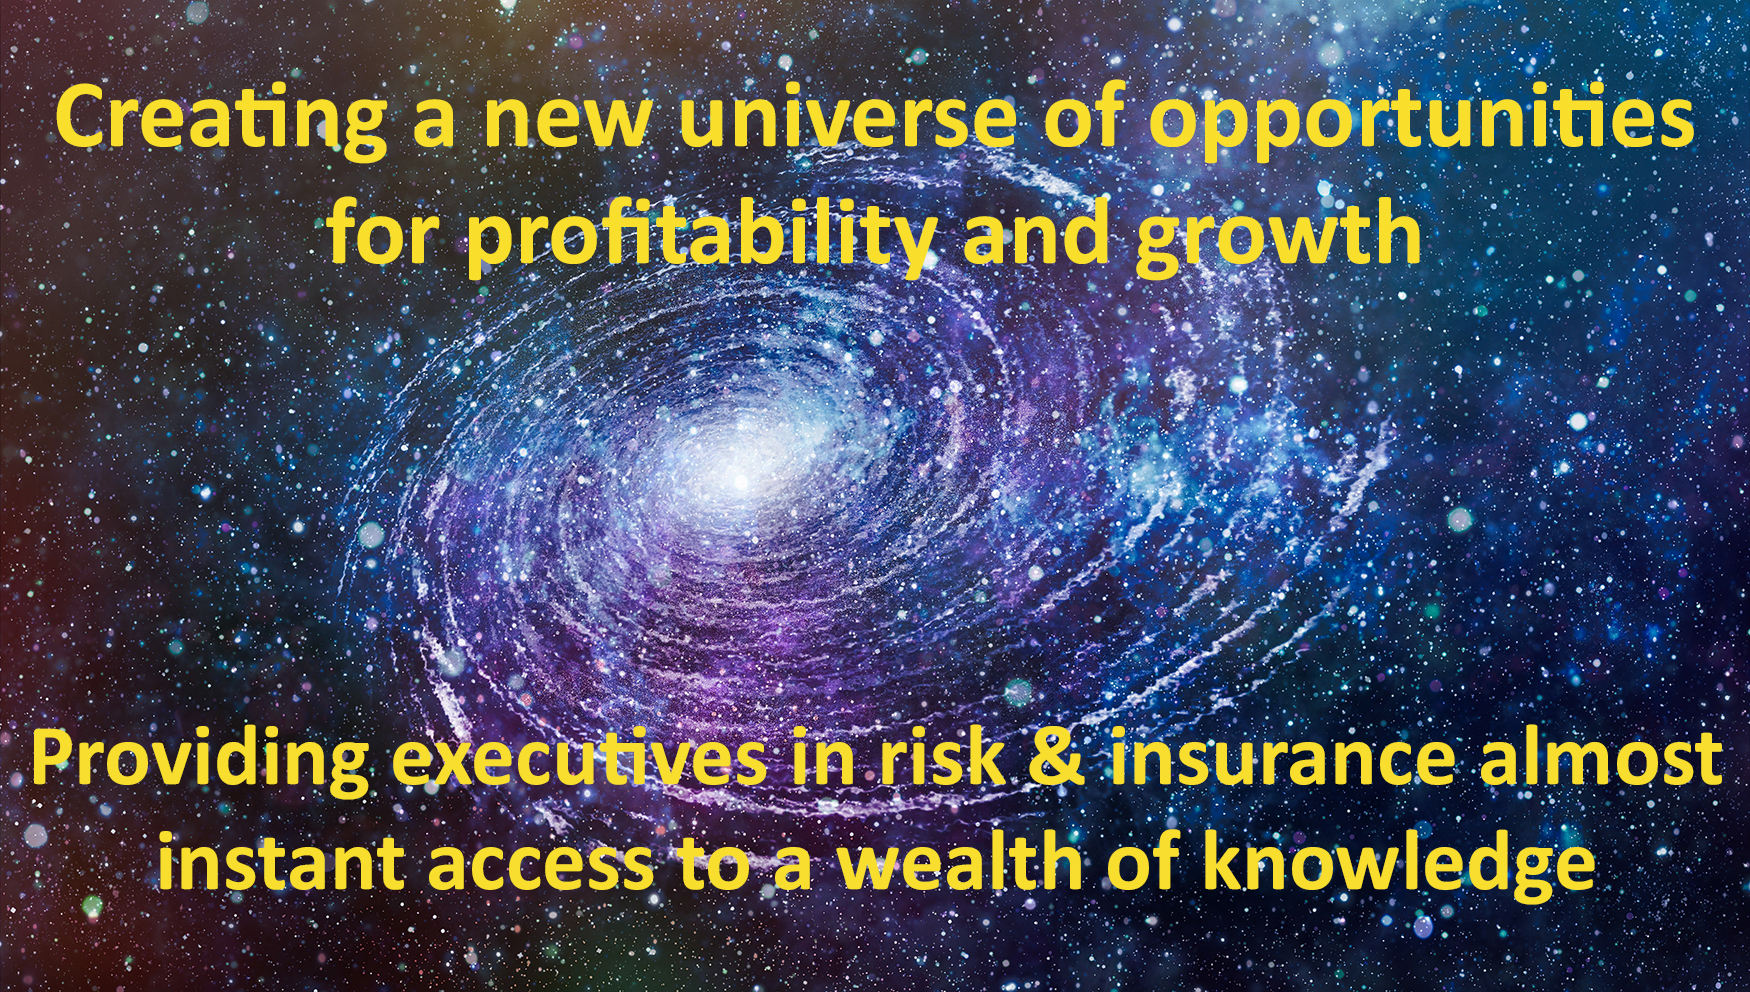 New universe of opportunities